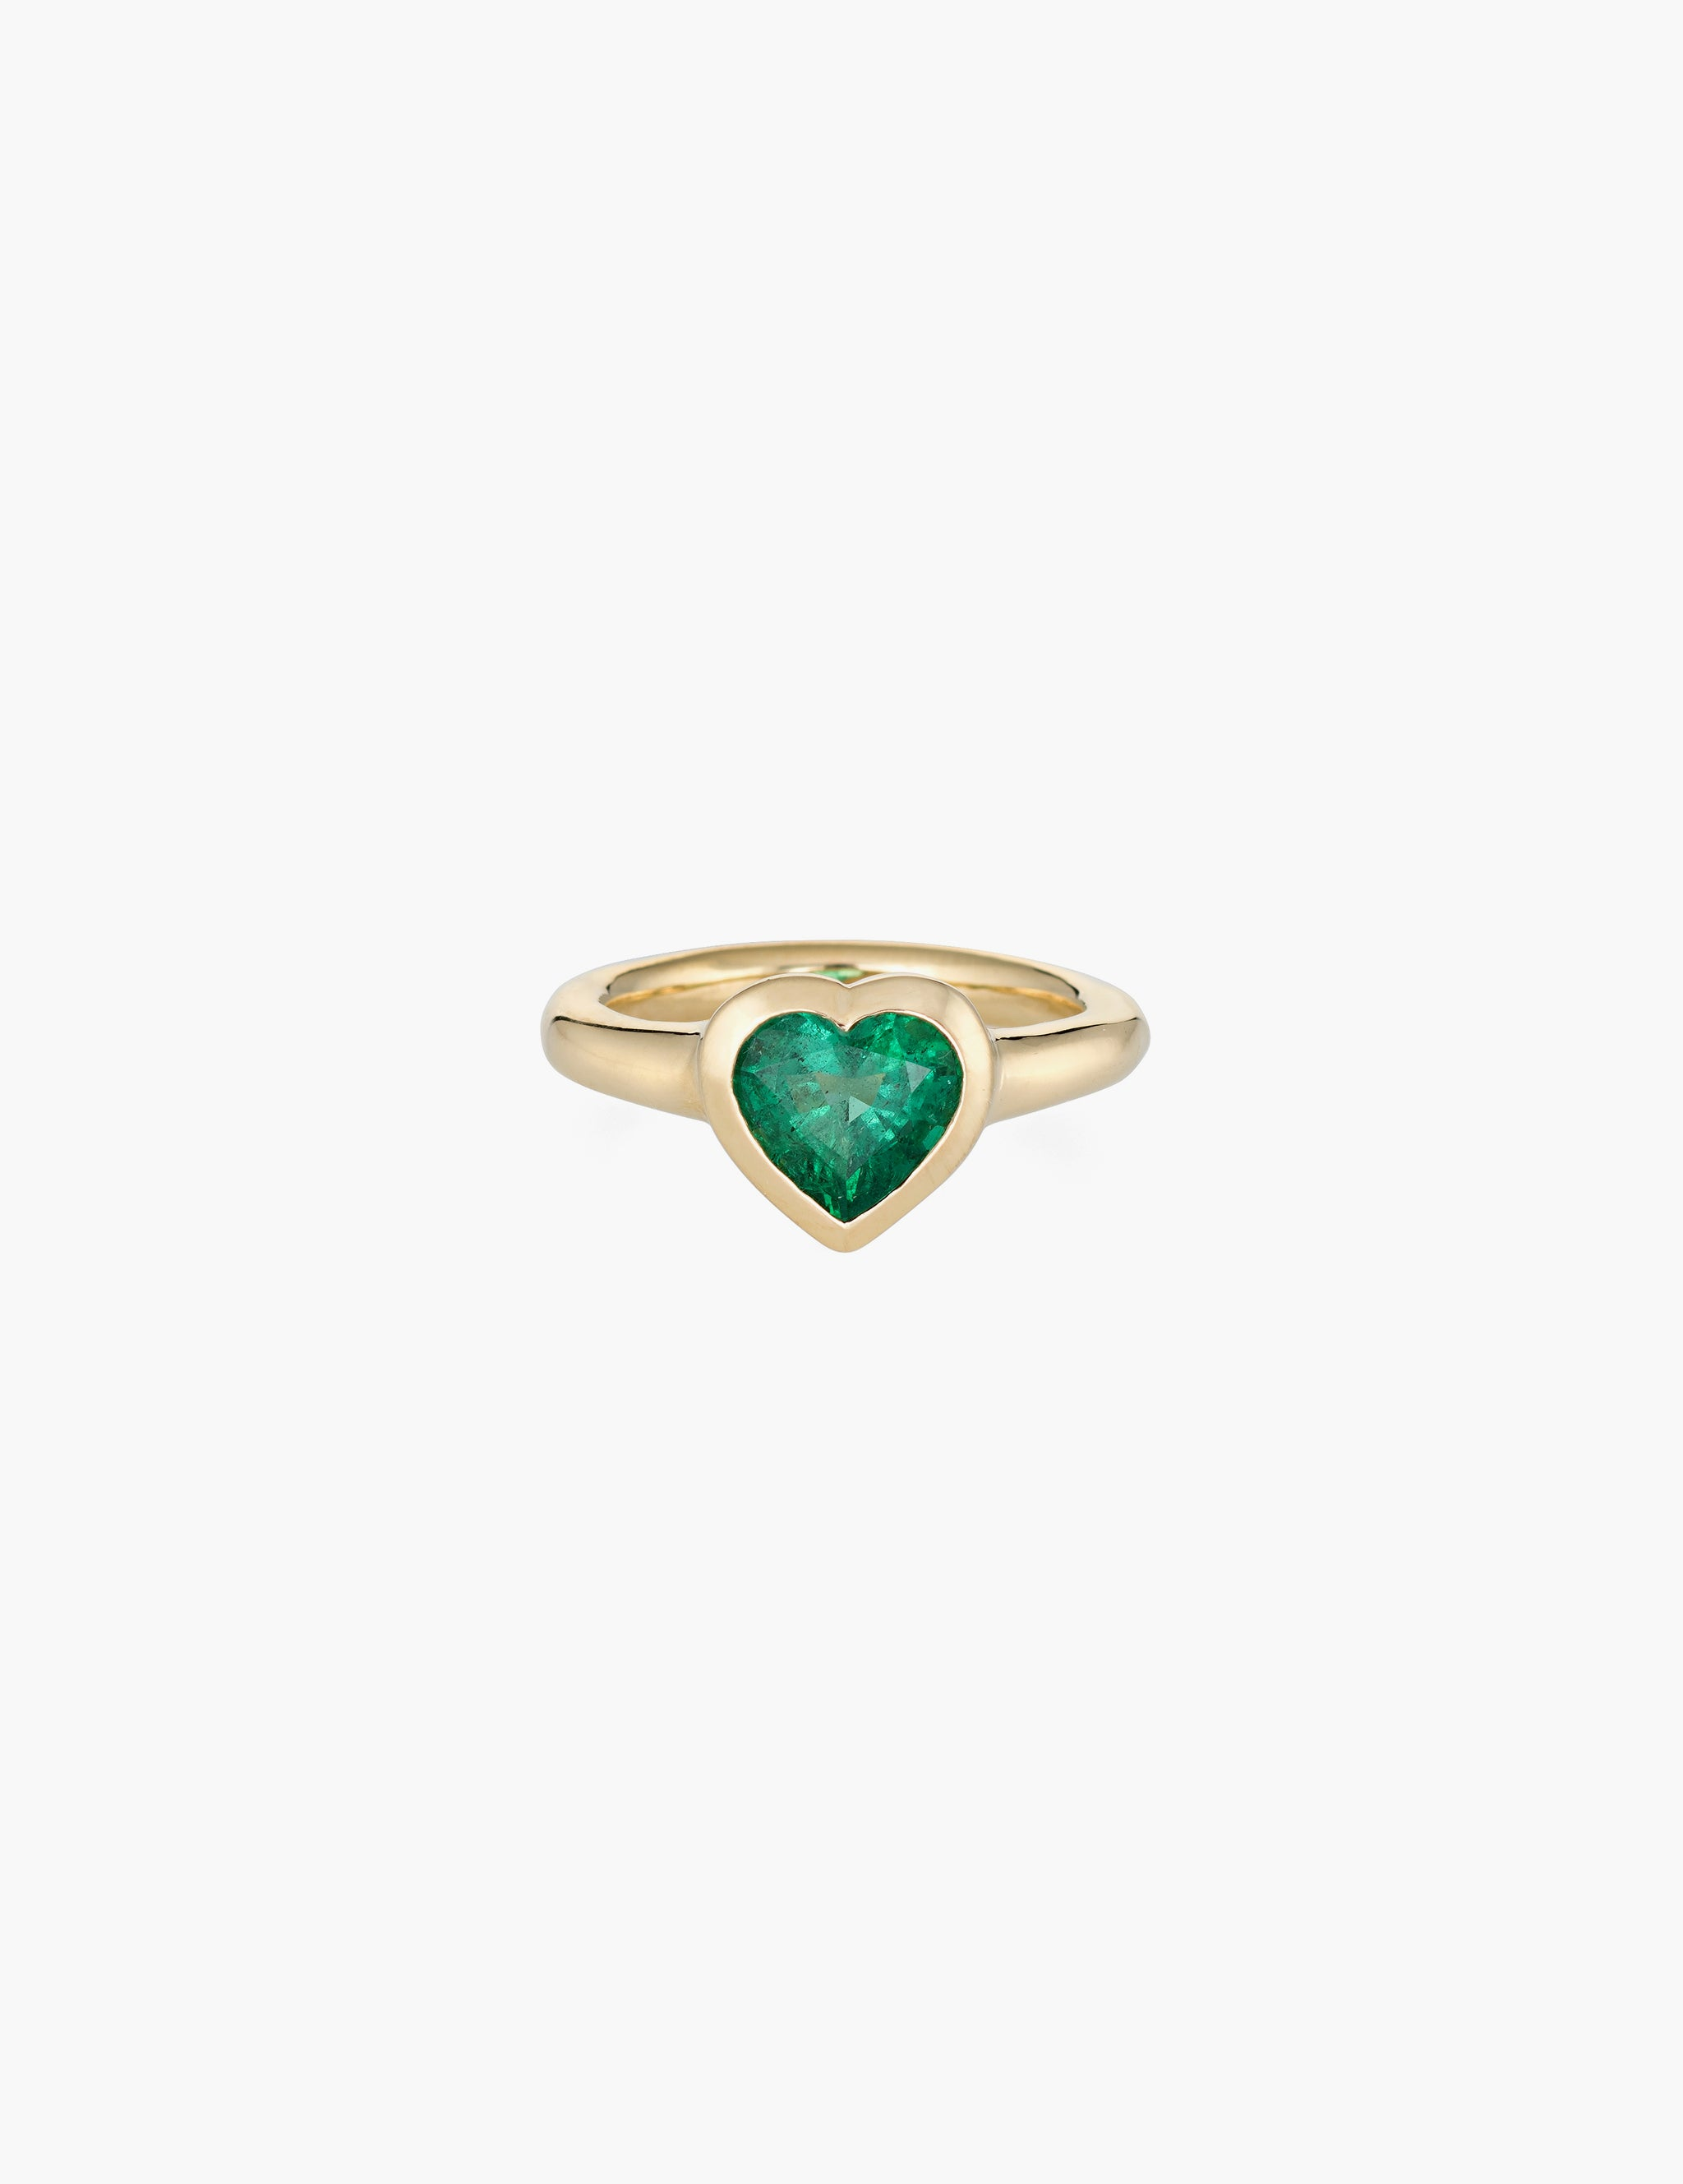 Large emerald heart ring